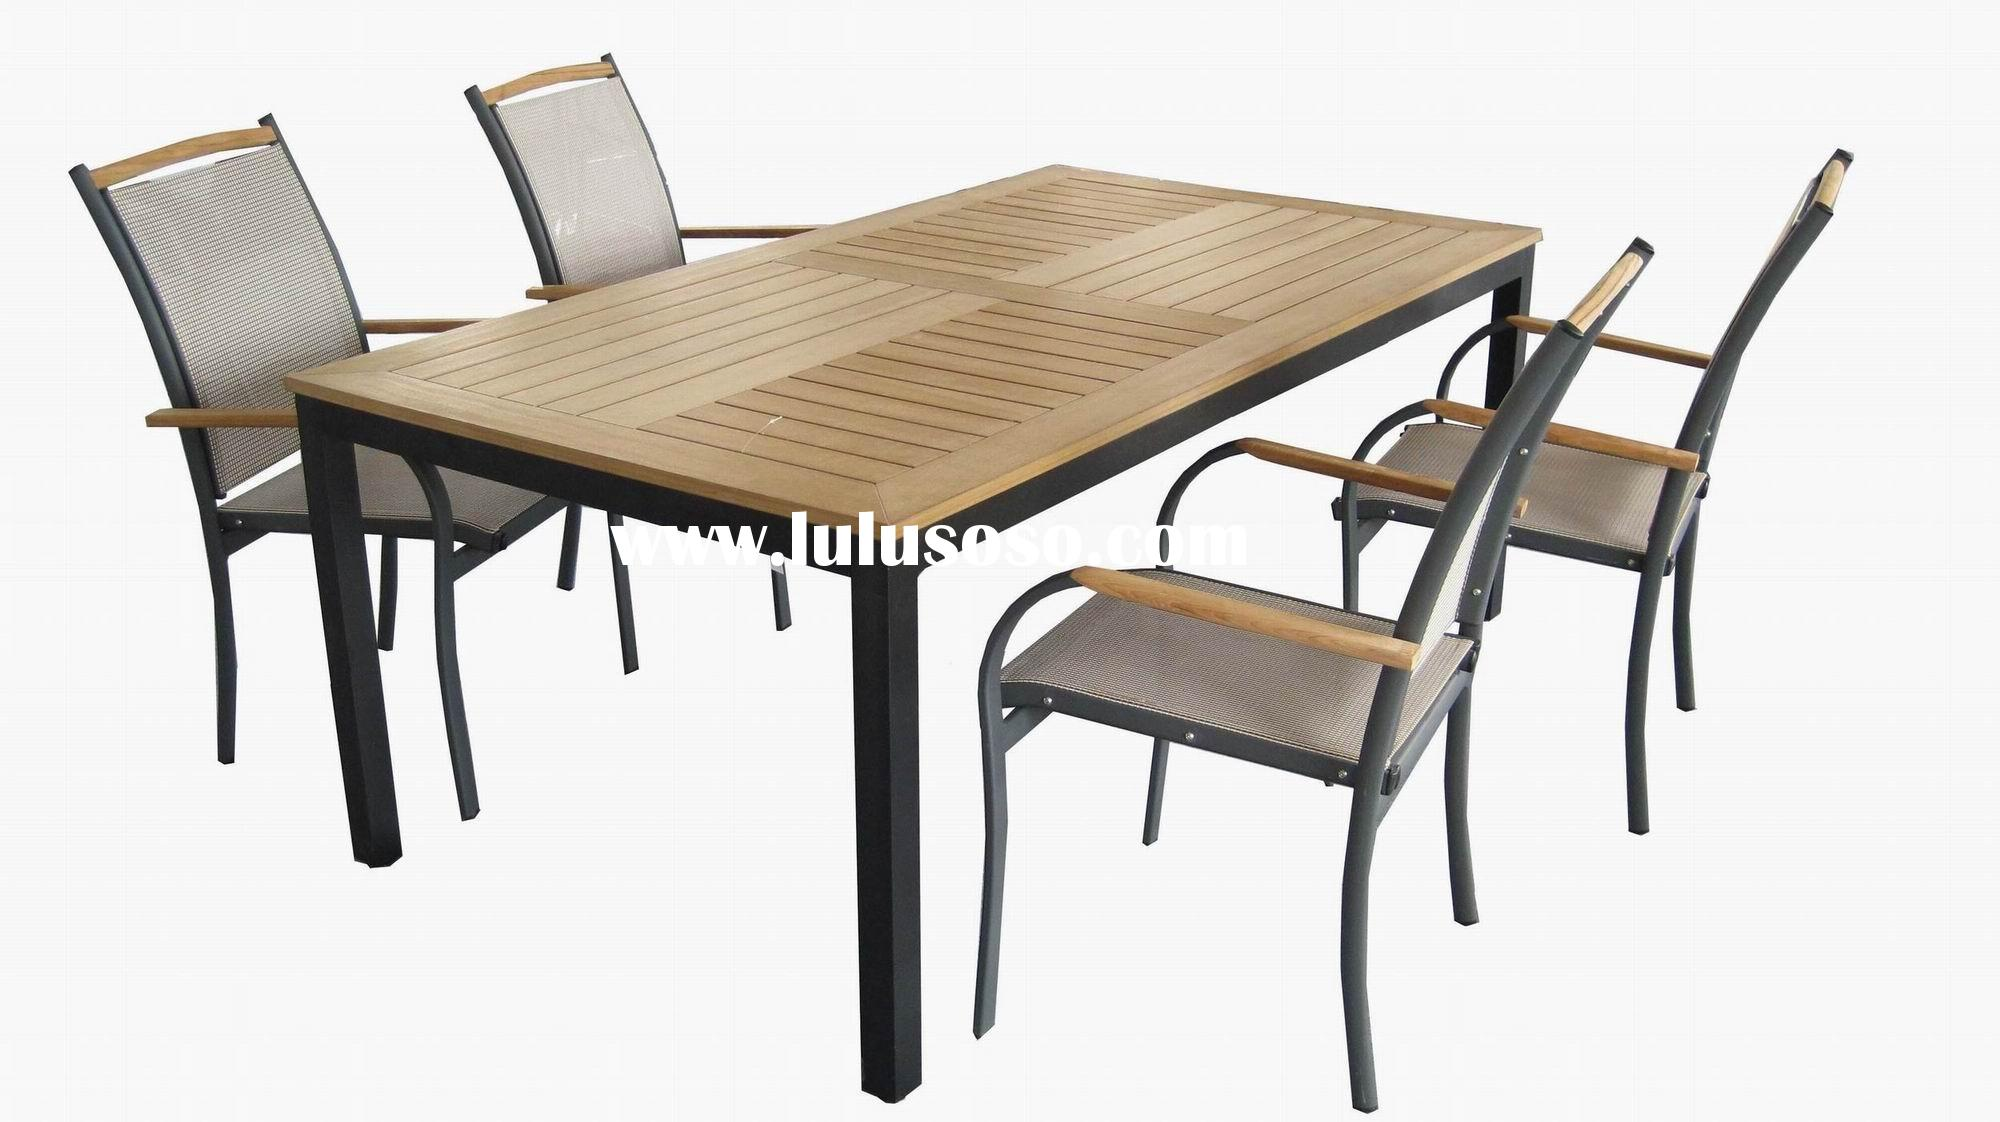 plastic wood top aluminum frame dining table and chair  : SolidWoodtopAluminumtableandchair from sell.lulusoso.com size 2000 x 1122 jpeg 190kB